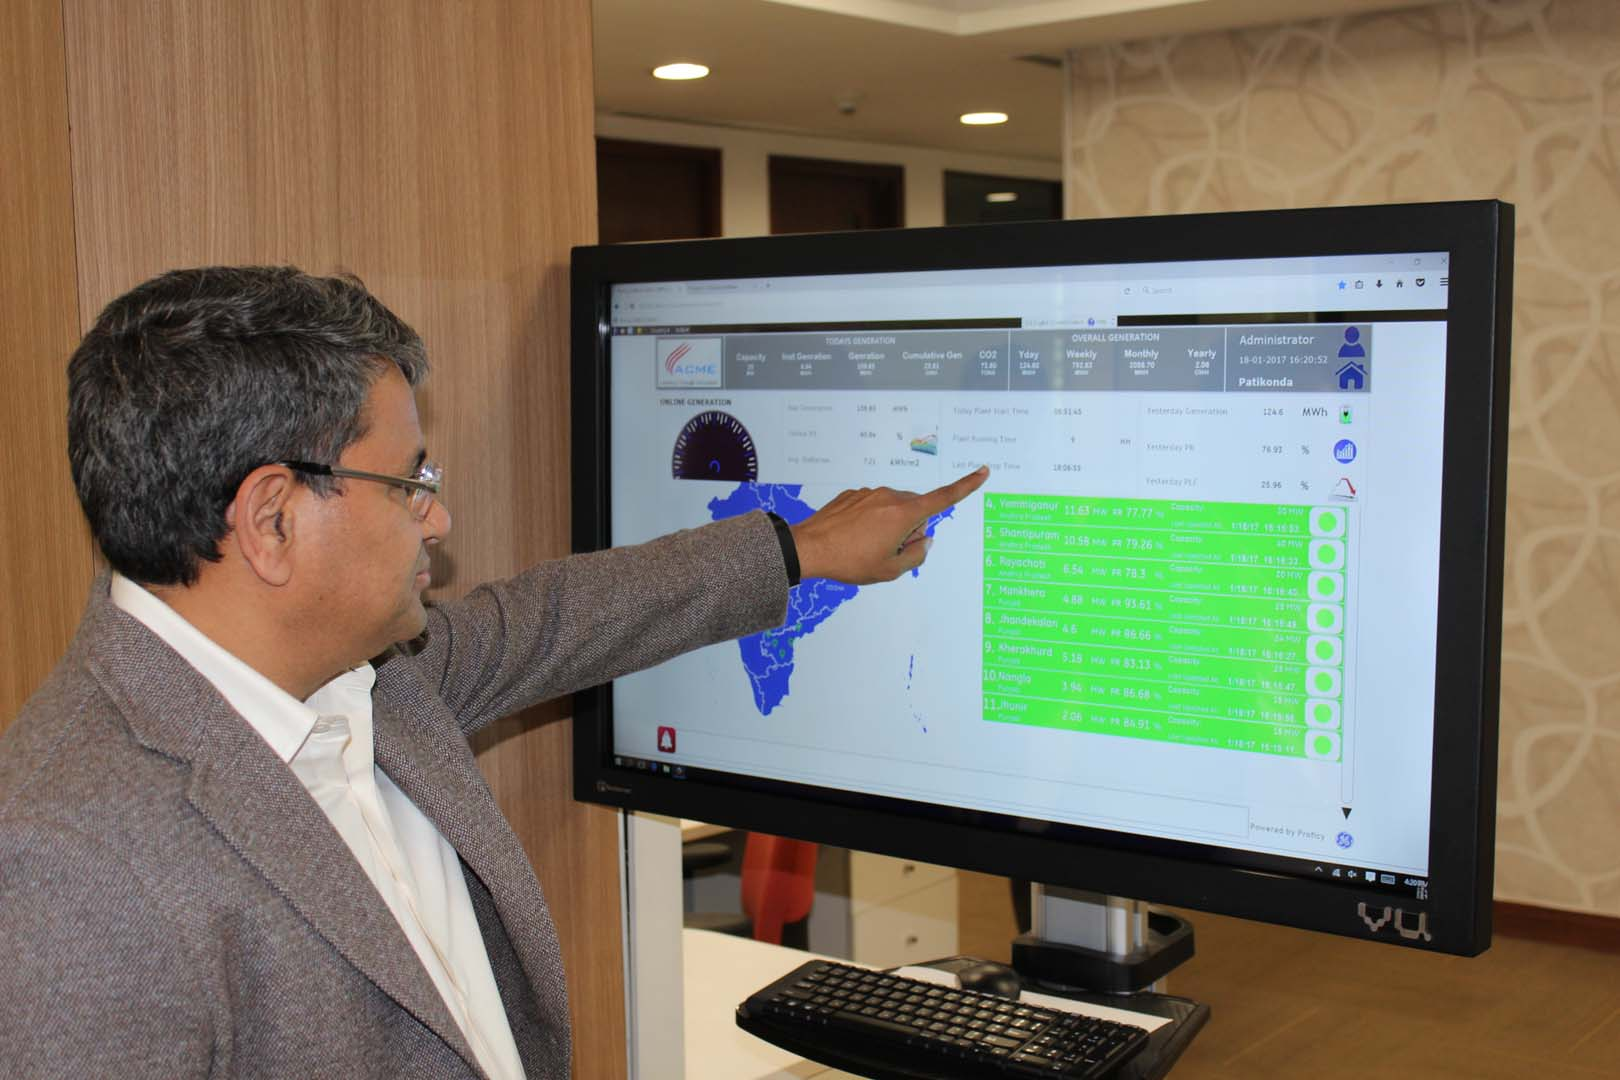 Upadhyay looks at analytics of a solar plant. Credit: Tom Kenning